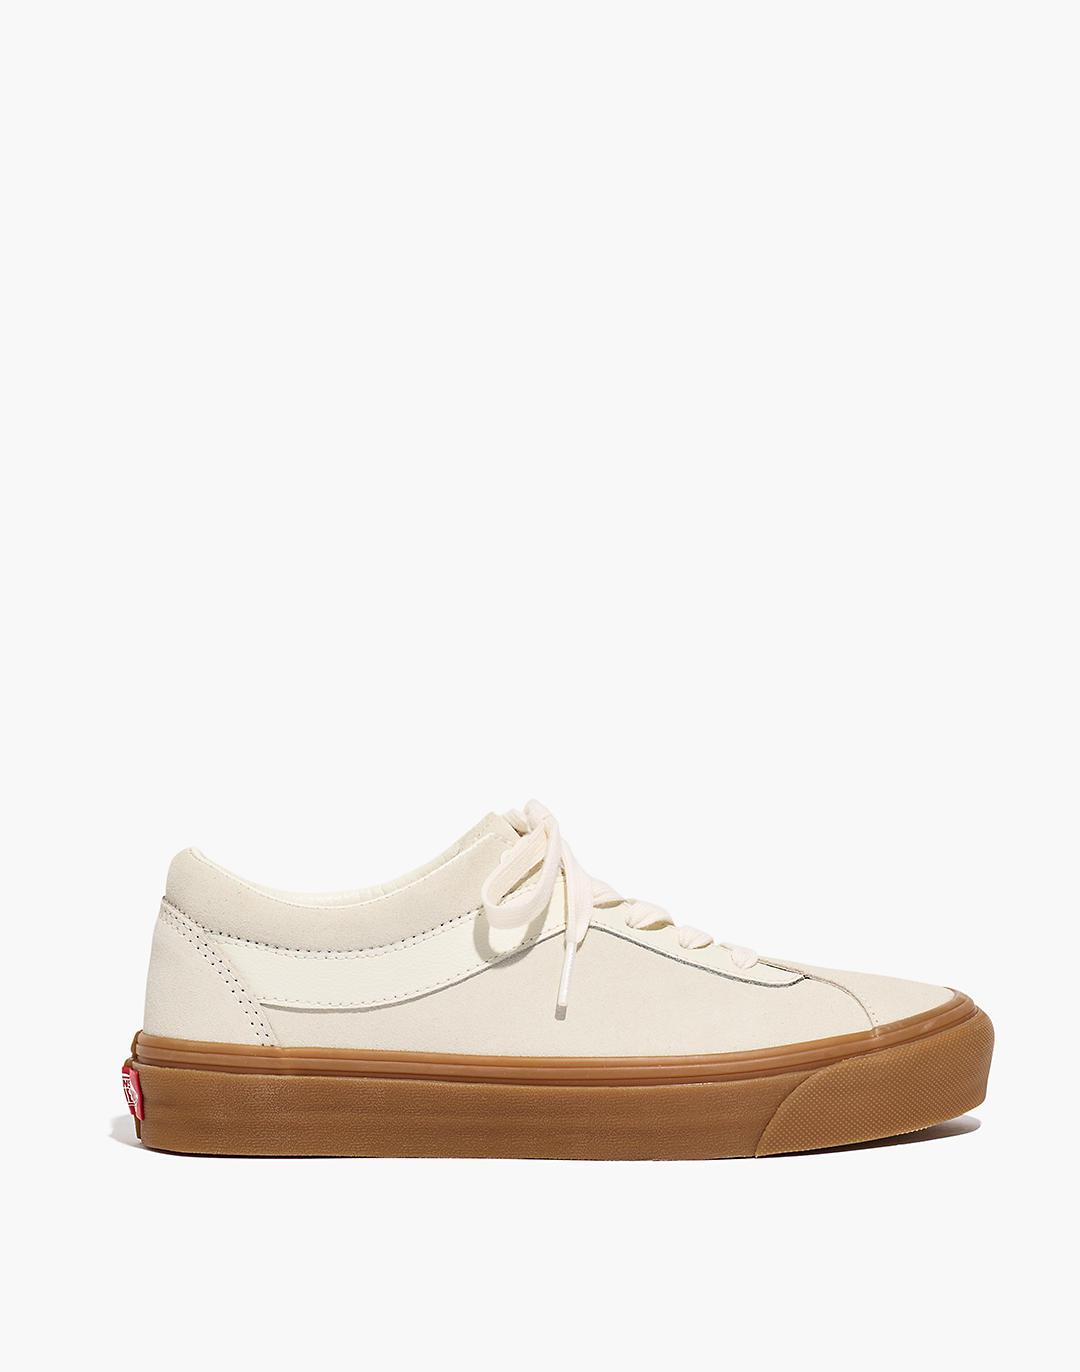 Vans® Unisex Bold NI Lace-Up Sneakers in Suede 1